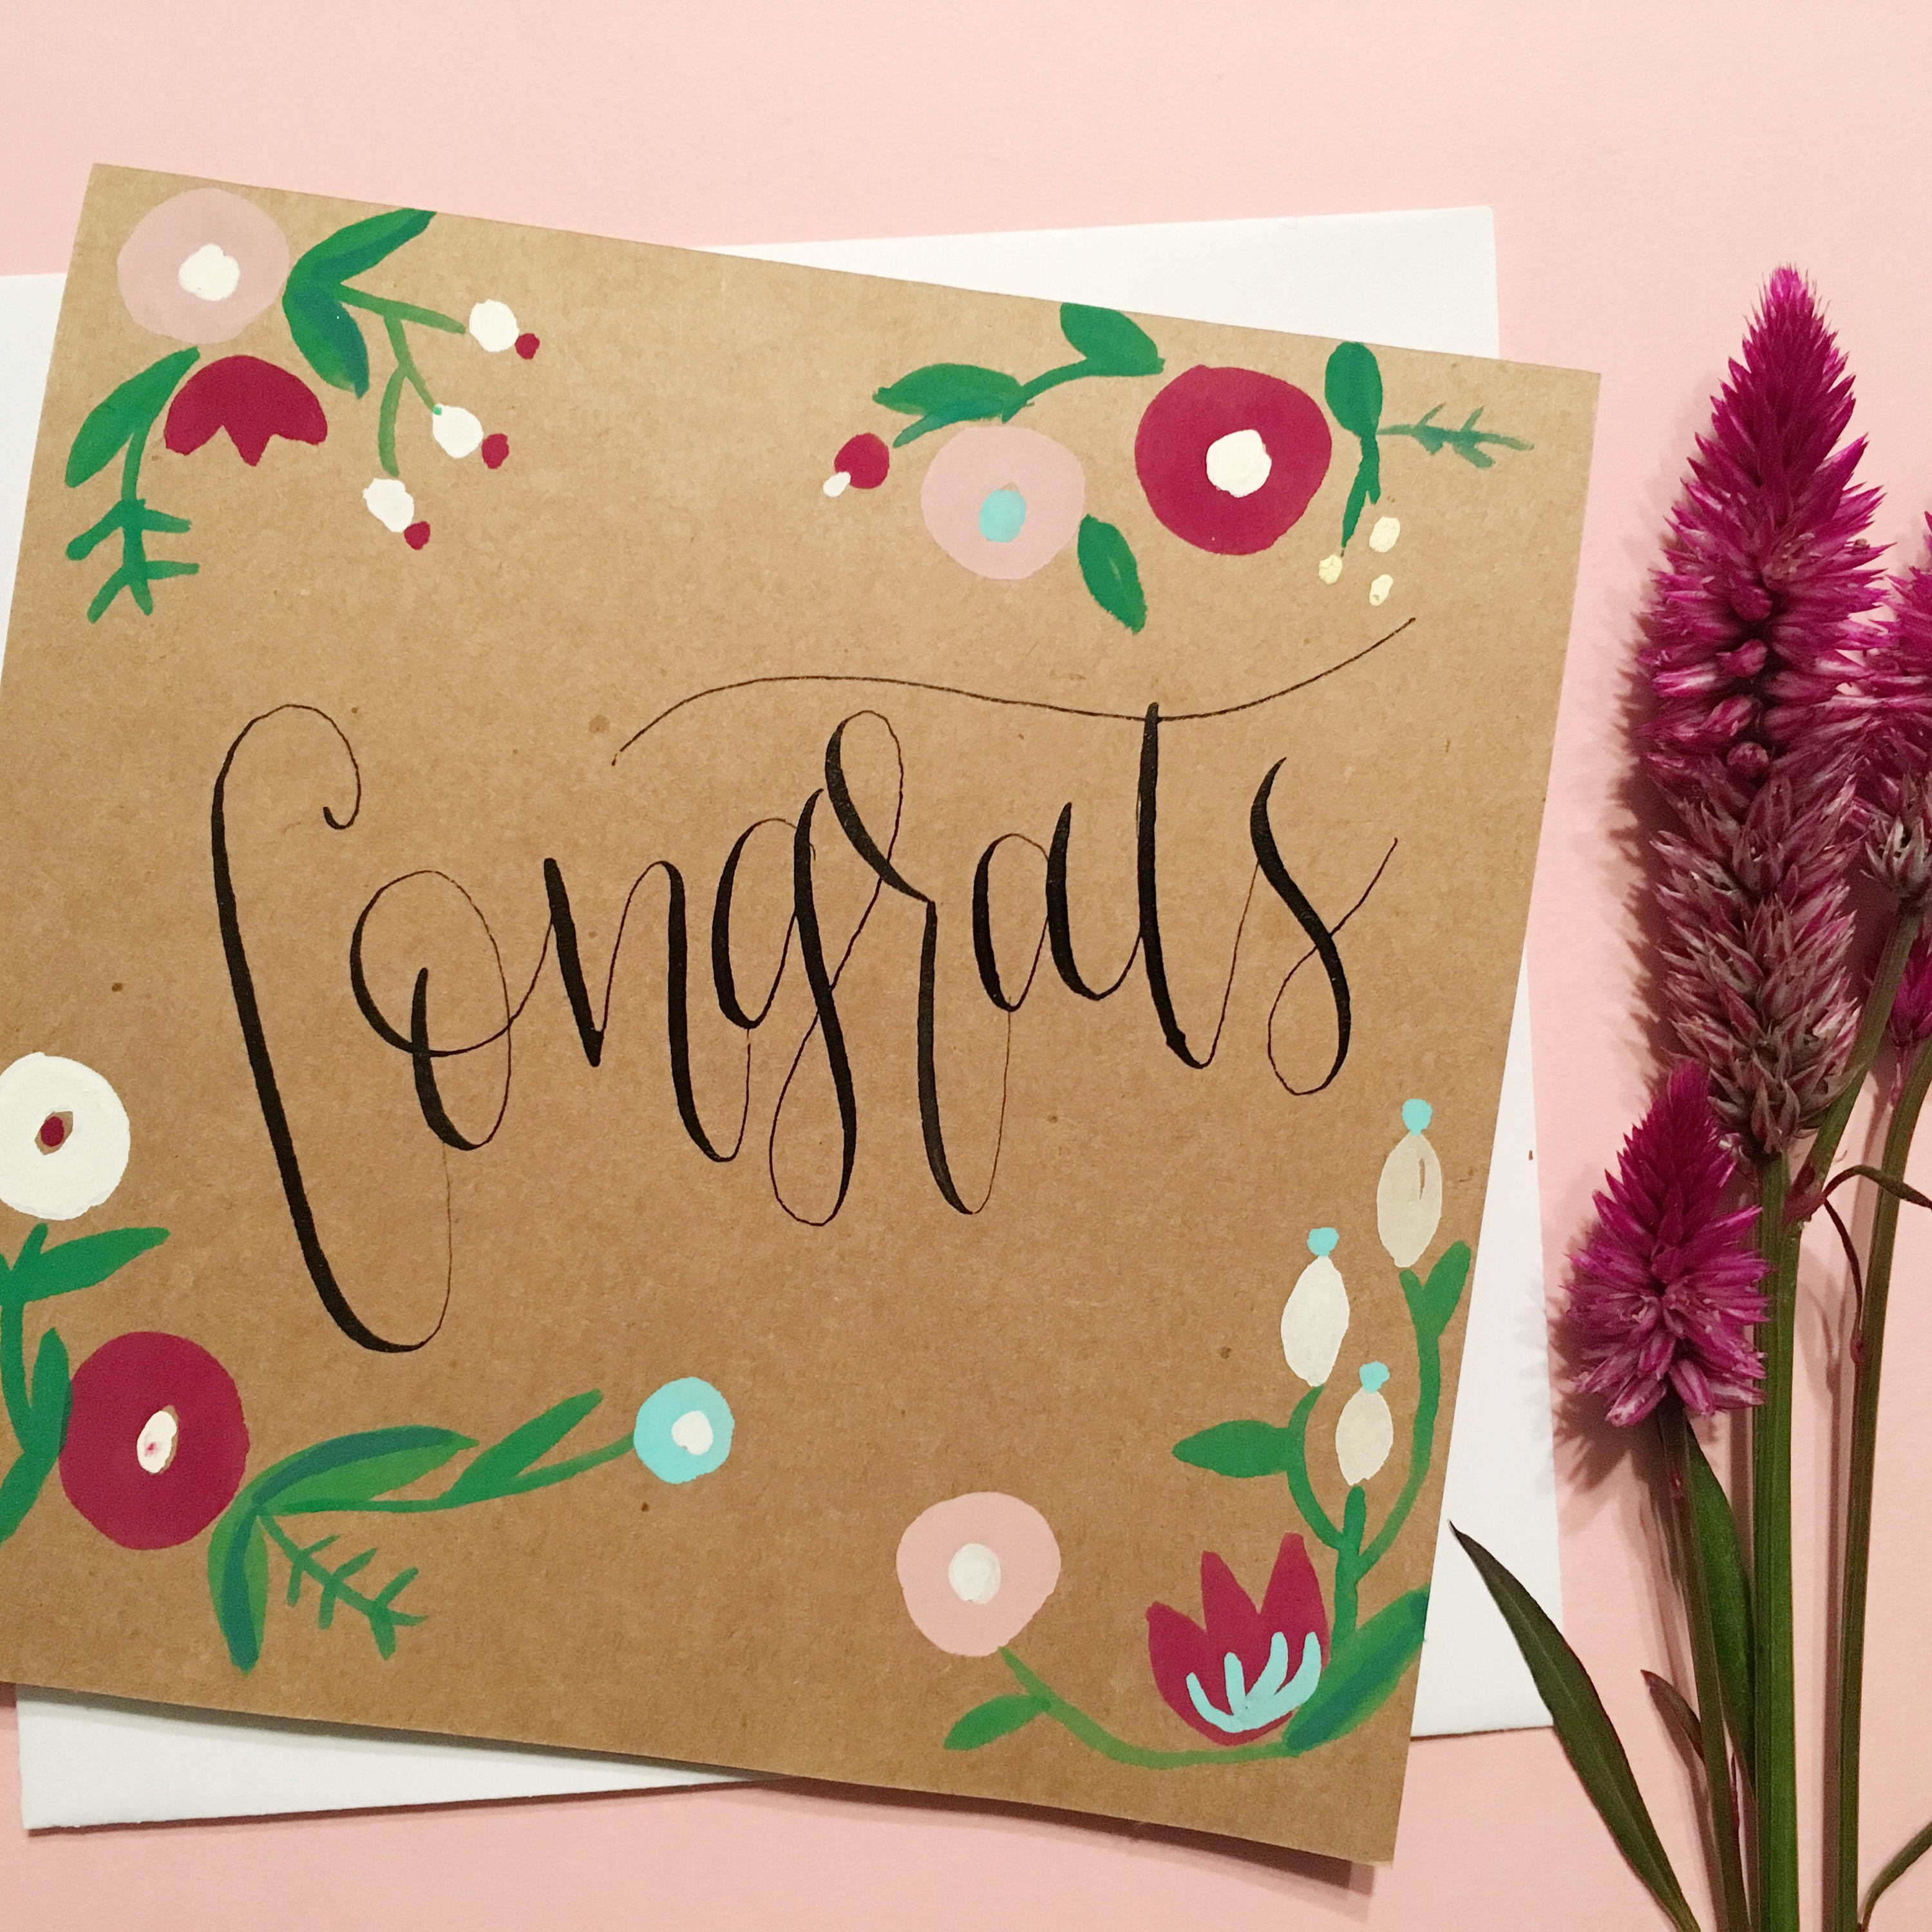 Congrats card handmade floral watercolor and calligraphy card congrats card handmade floral watercolor and calligraphy card baby shower card bridal shower card wedding card kristyandbryce Image collections